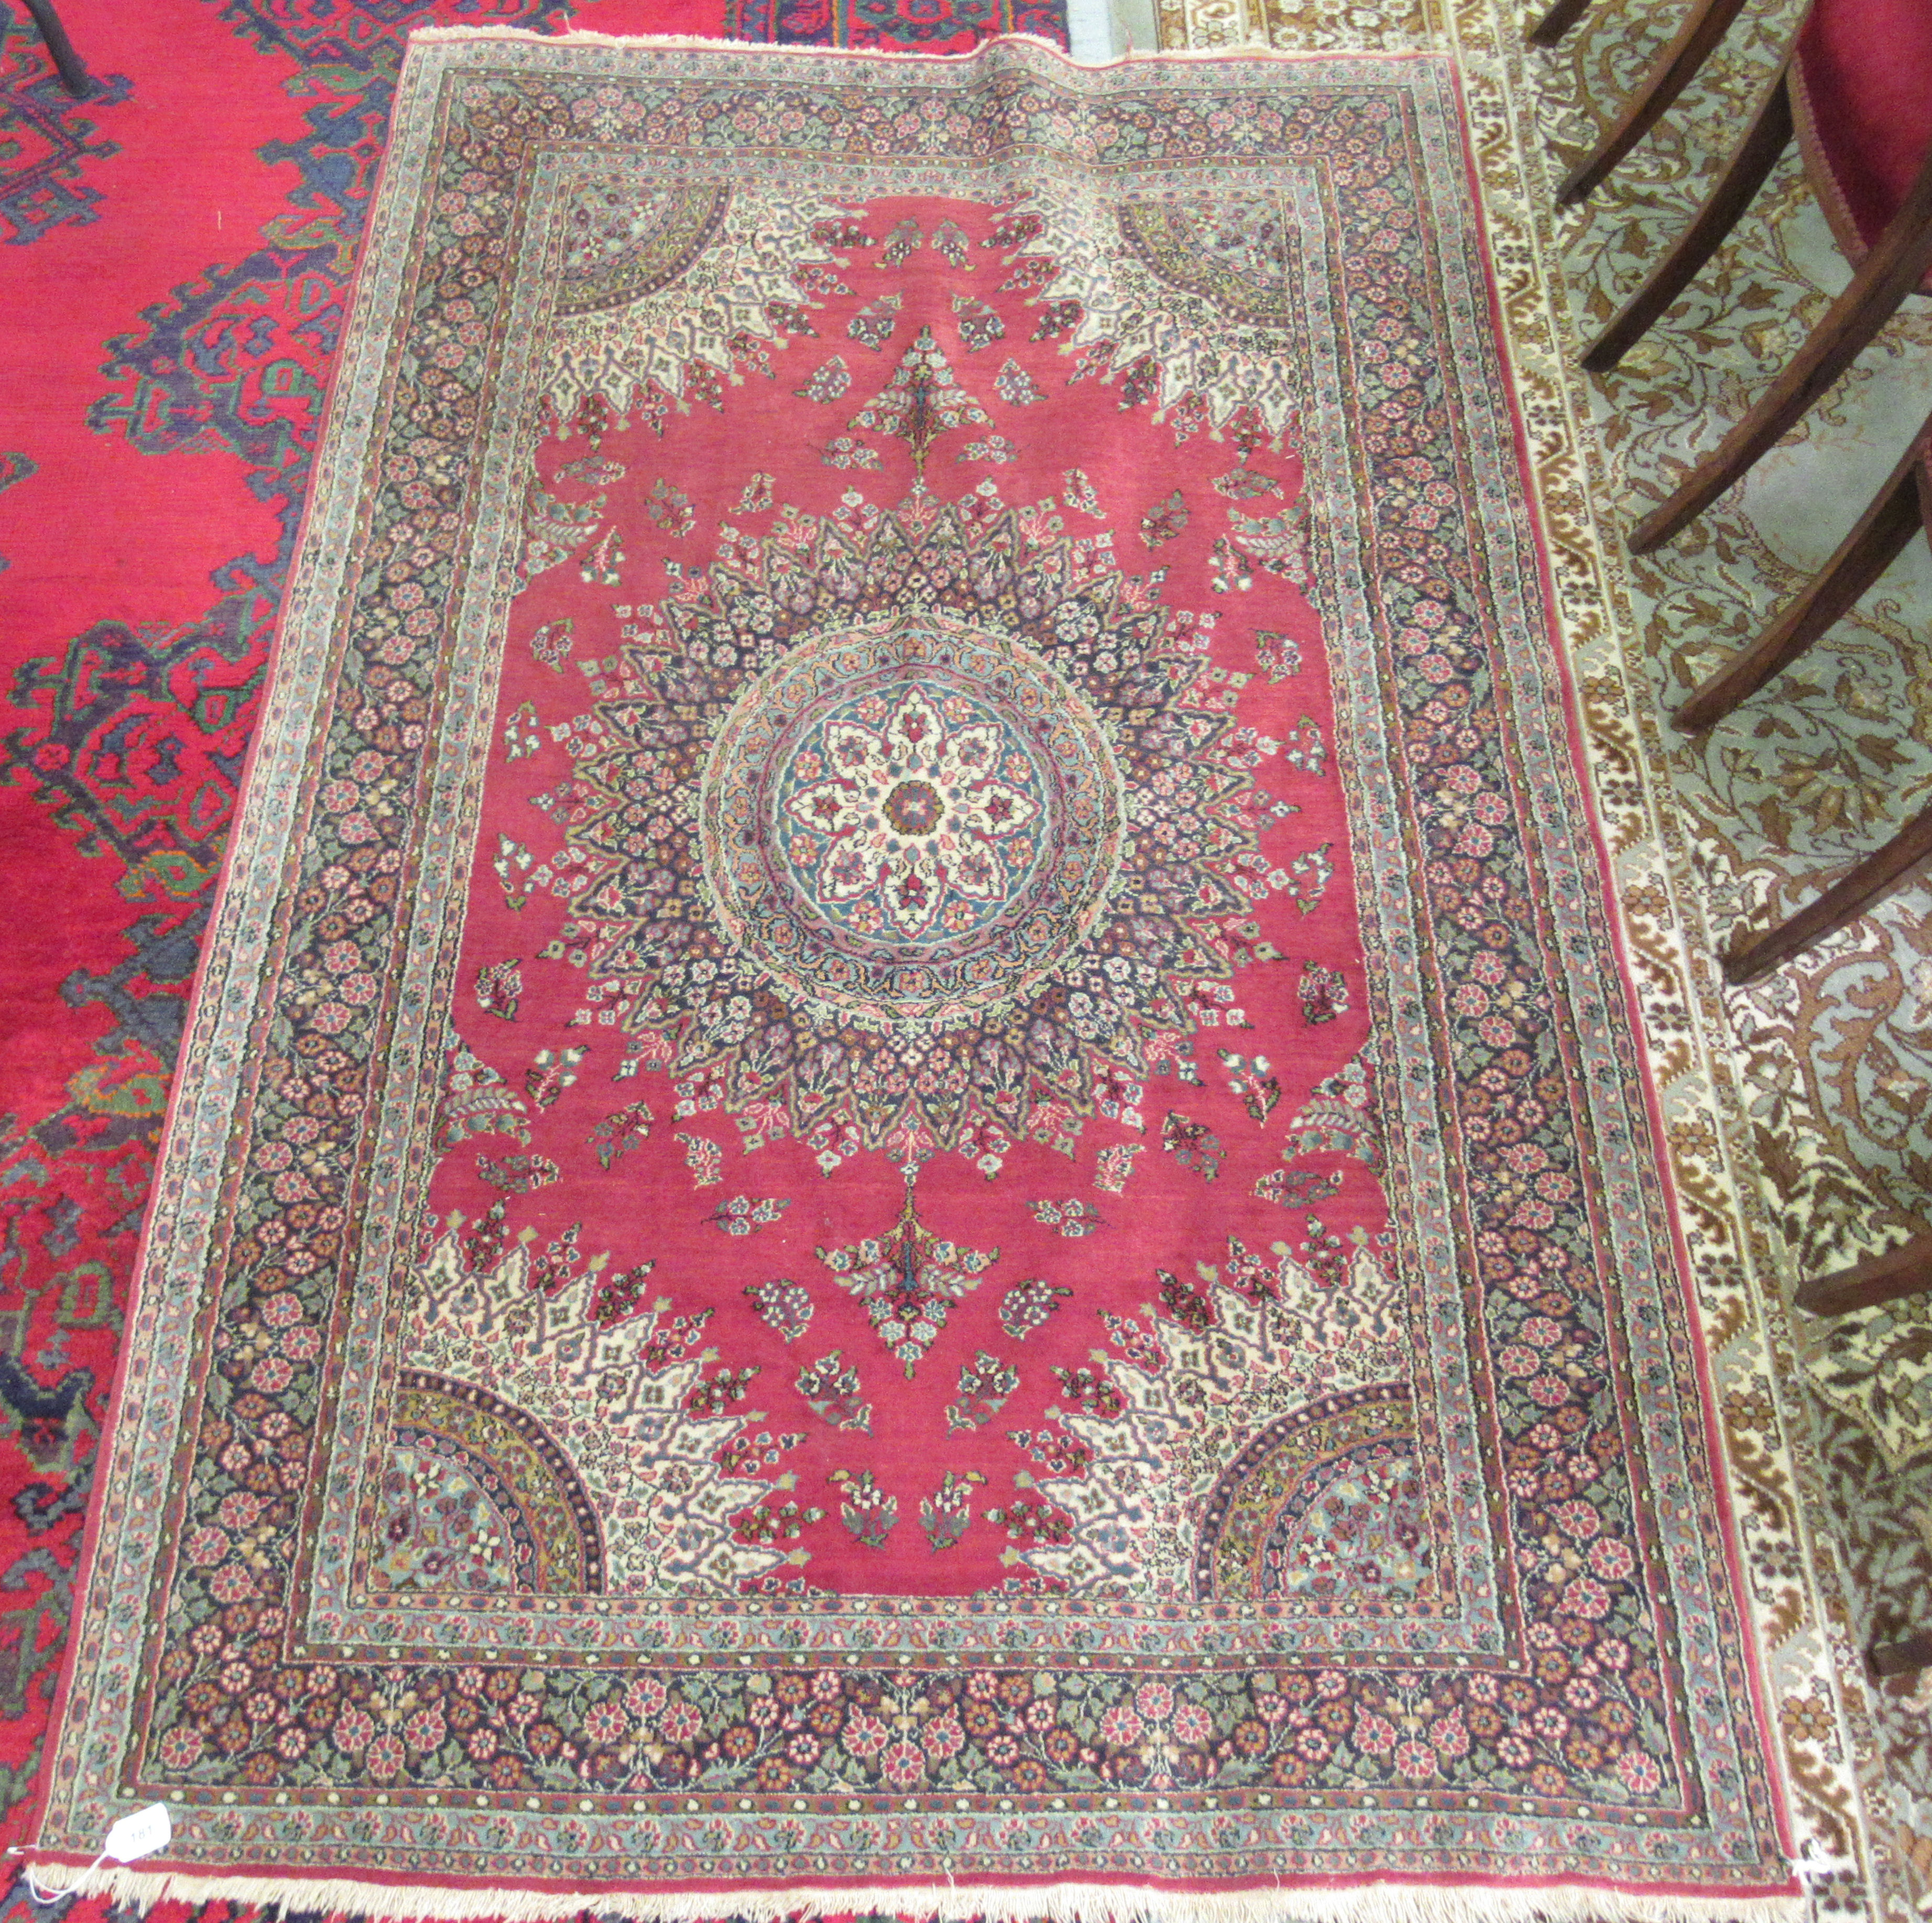 A Persian rug, decorated with a central starburst design medallion, bordered by floral designs, on a